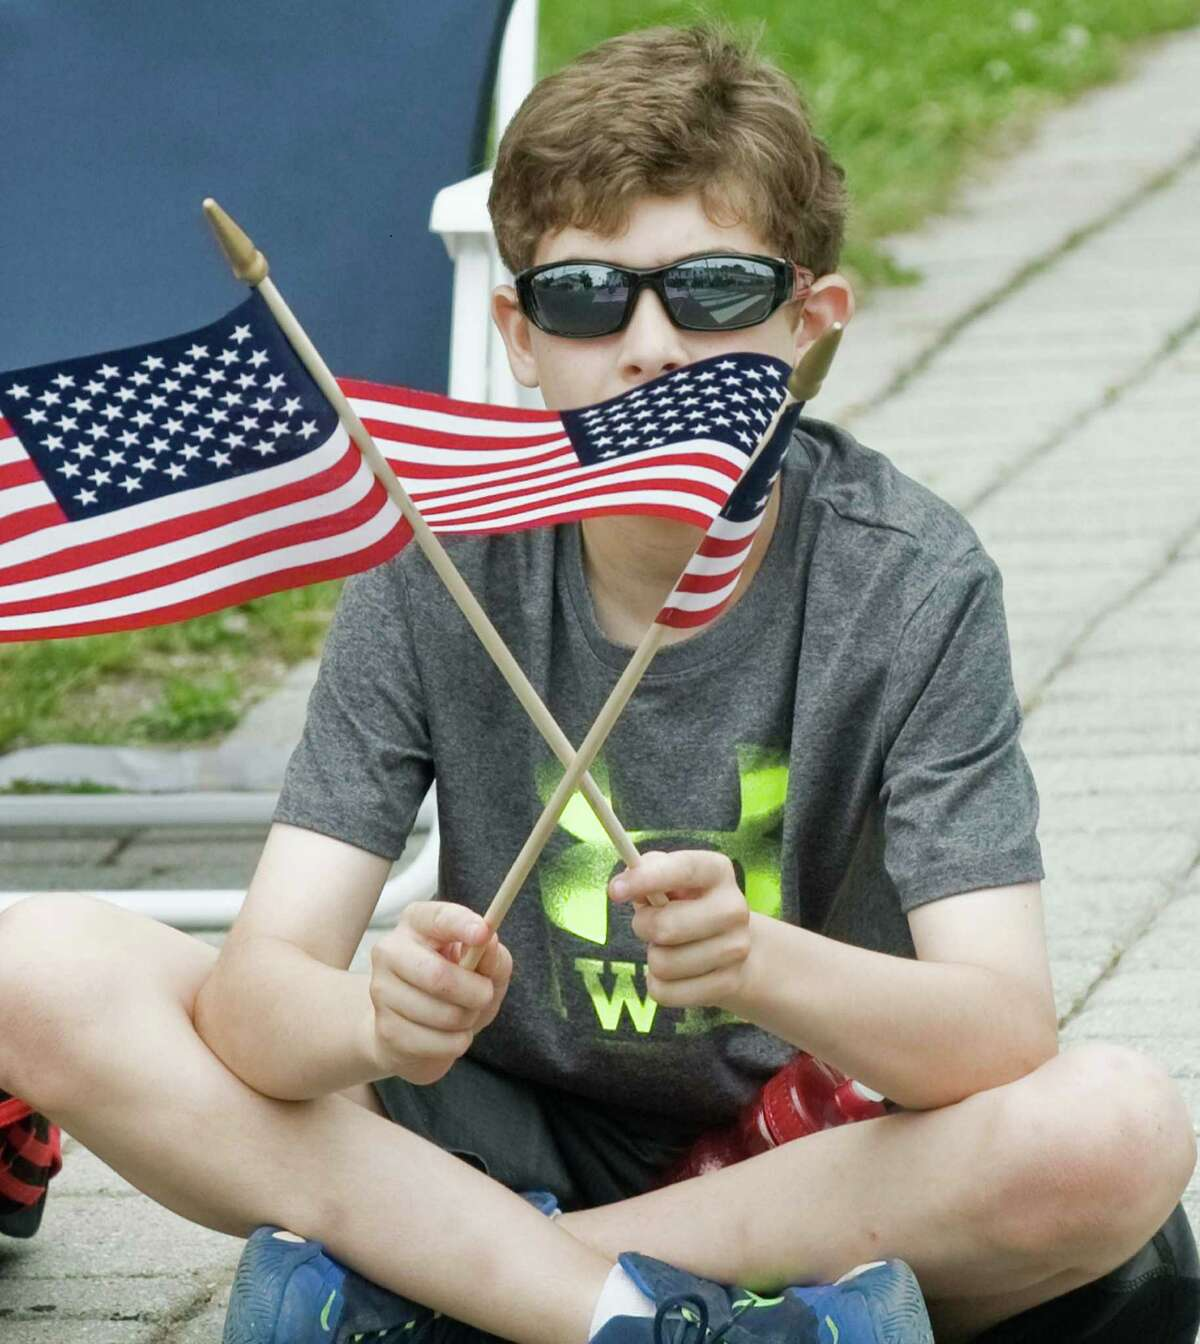 Nicholas Saccomani, 10 of Bethel, with a pair of flags to wave at the Bethel Memorial Day Parade on Greenwood Avenue. Sunday, May 22, 2016